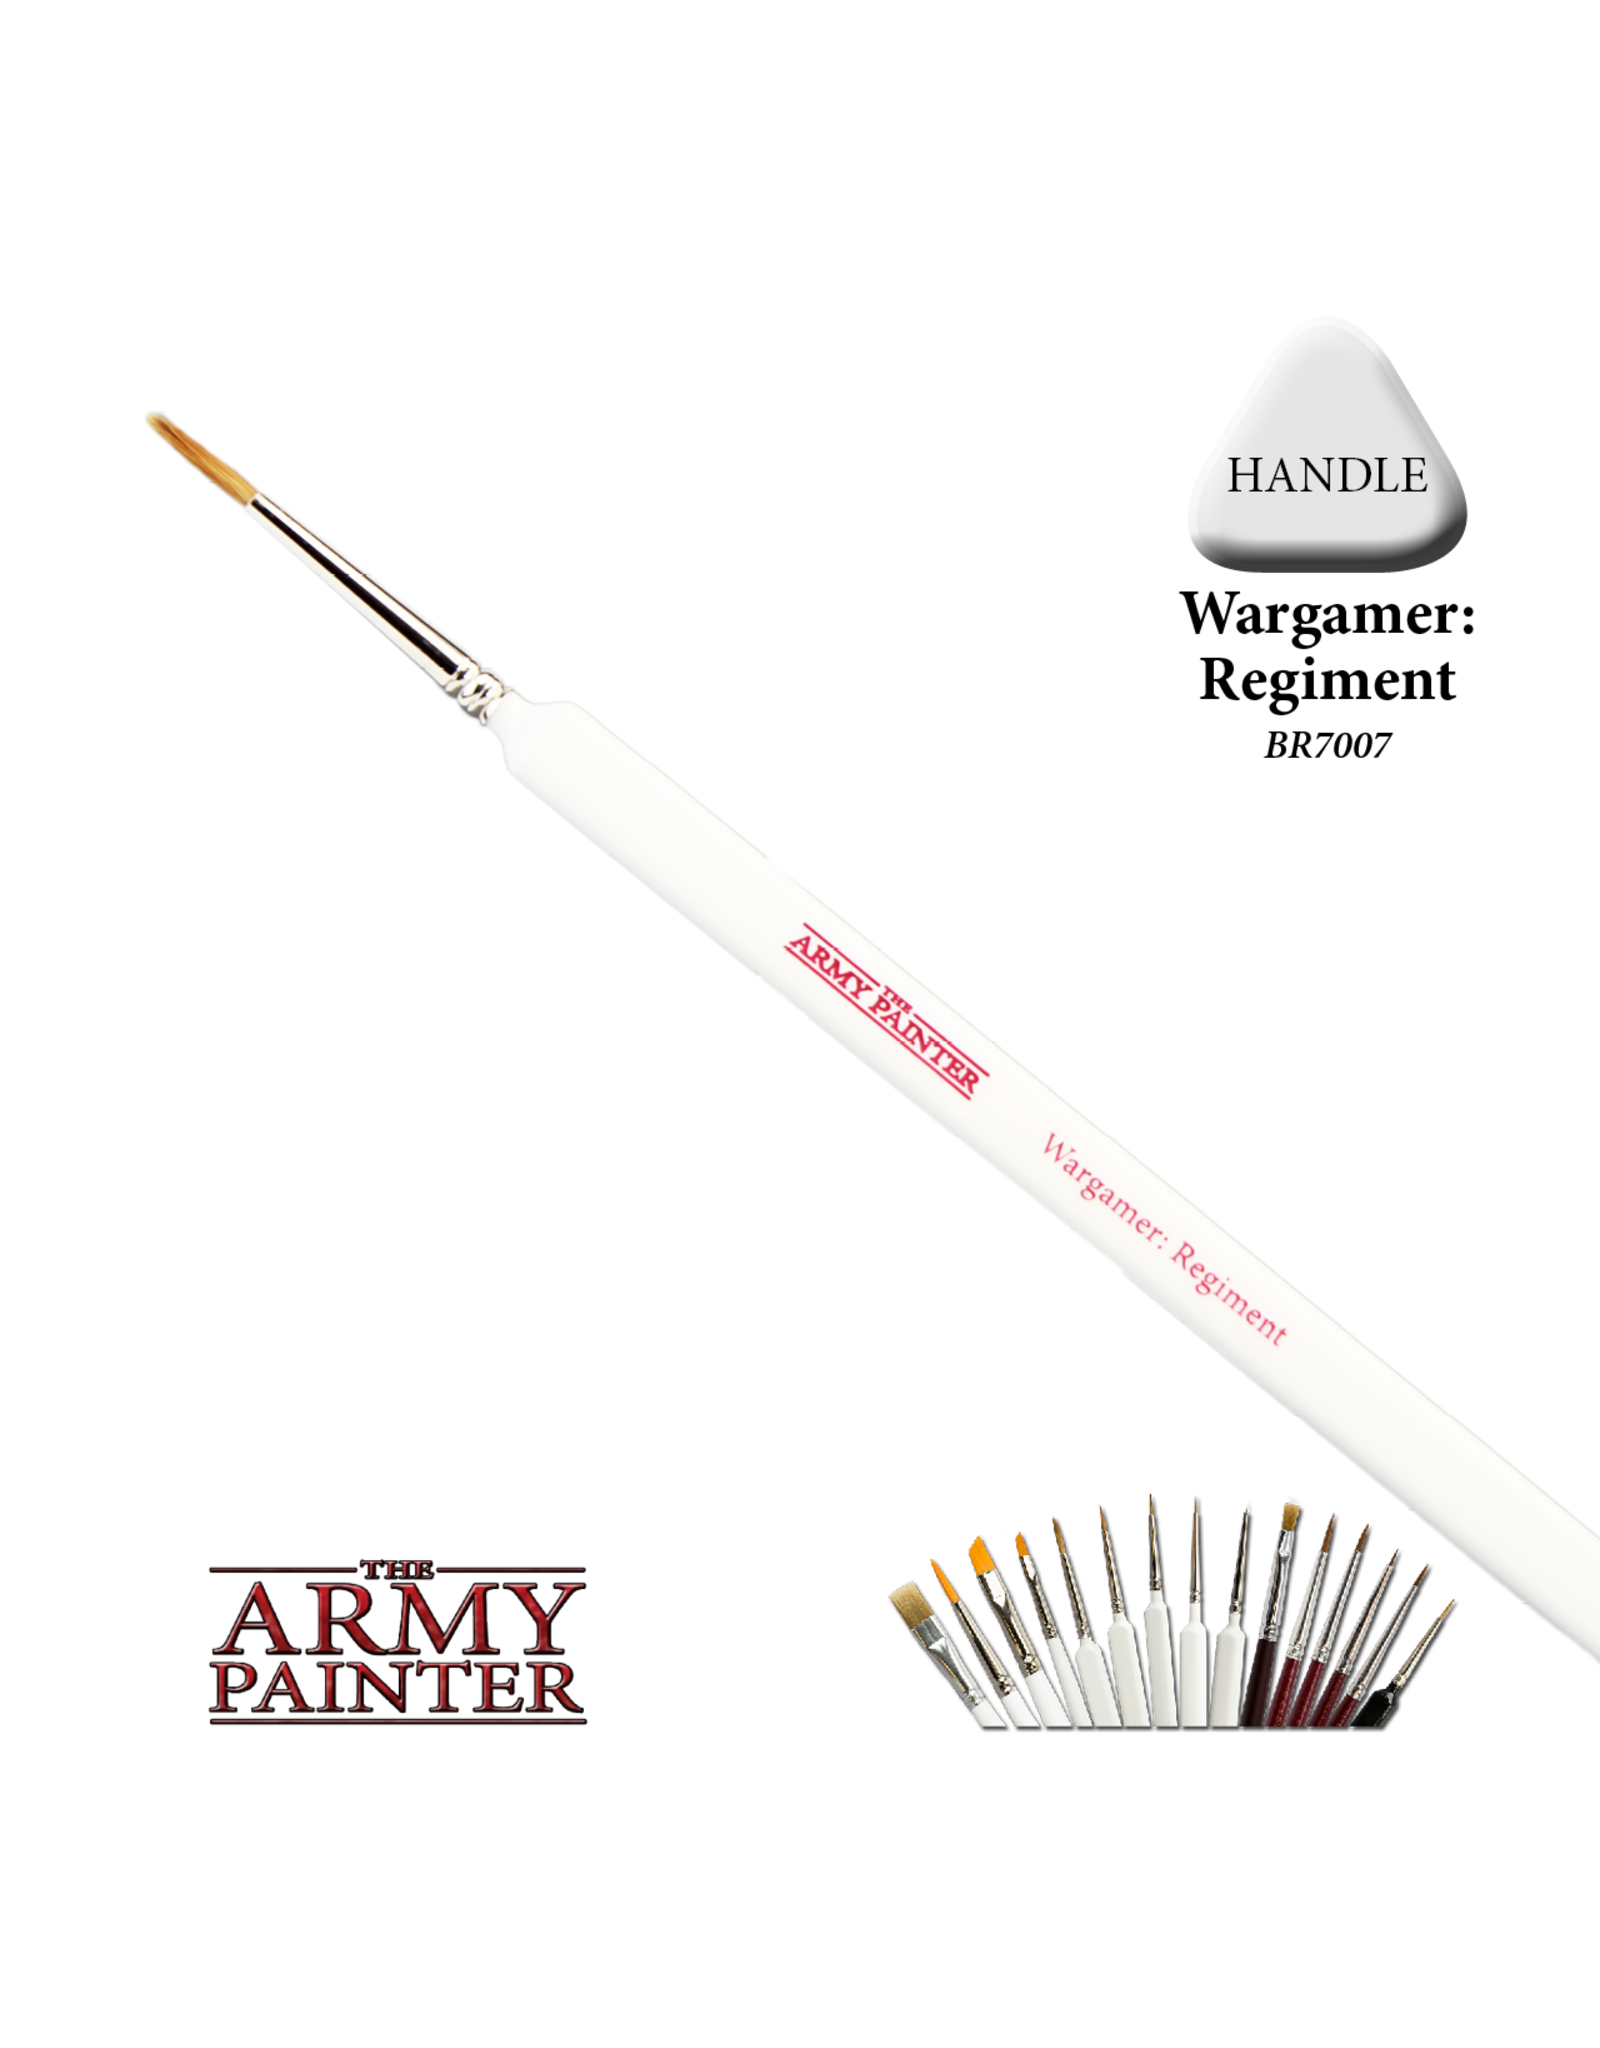 THE ARMY PAINTER ARMY PAINTER WARGAMER REGIMENT BRUSH